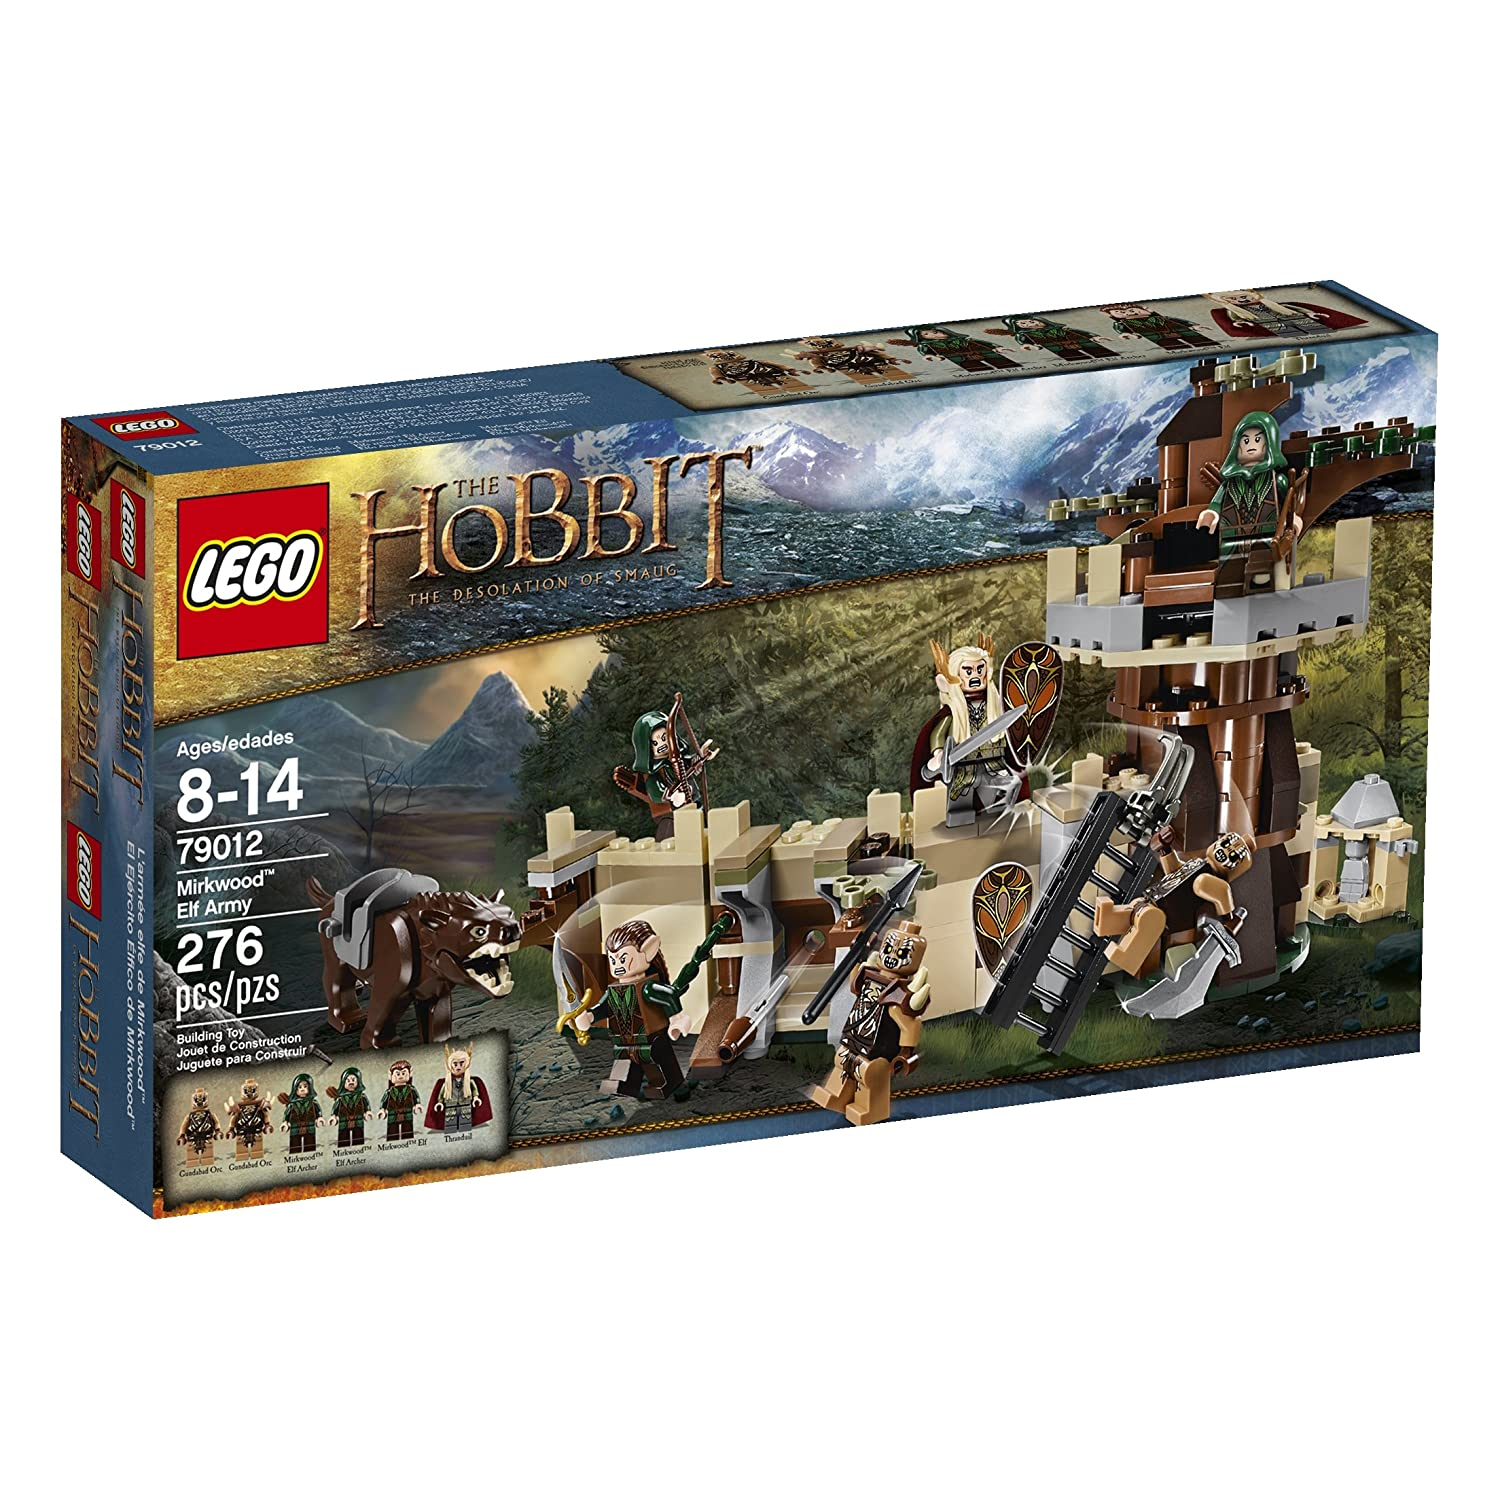 Lego Lord of the Rings Mirkwood Elf Army Building Kit Review